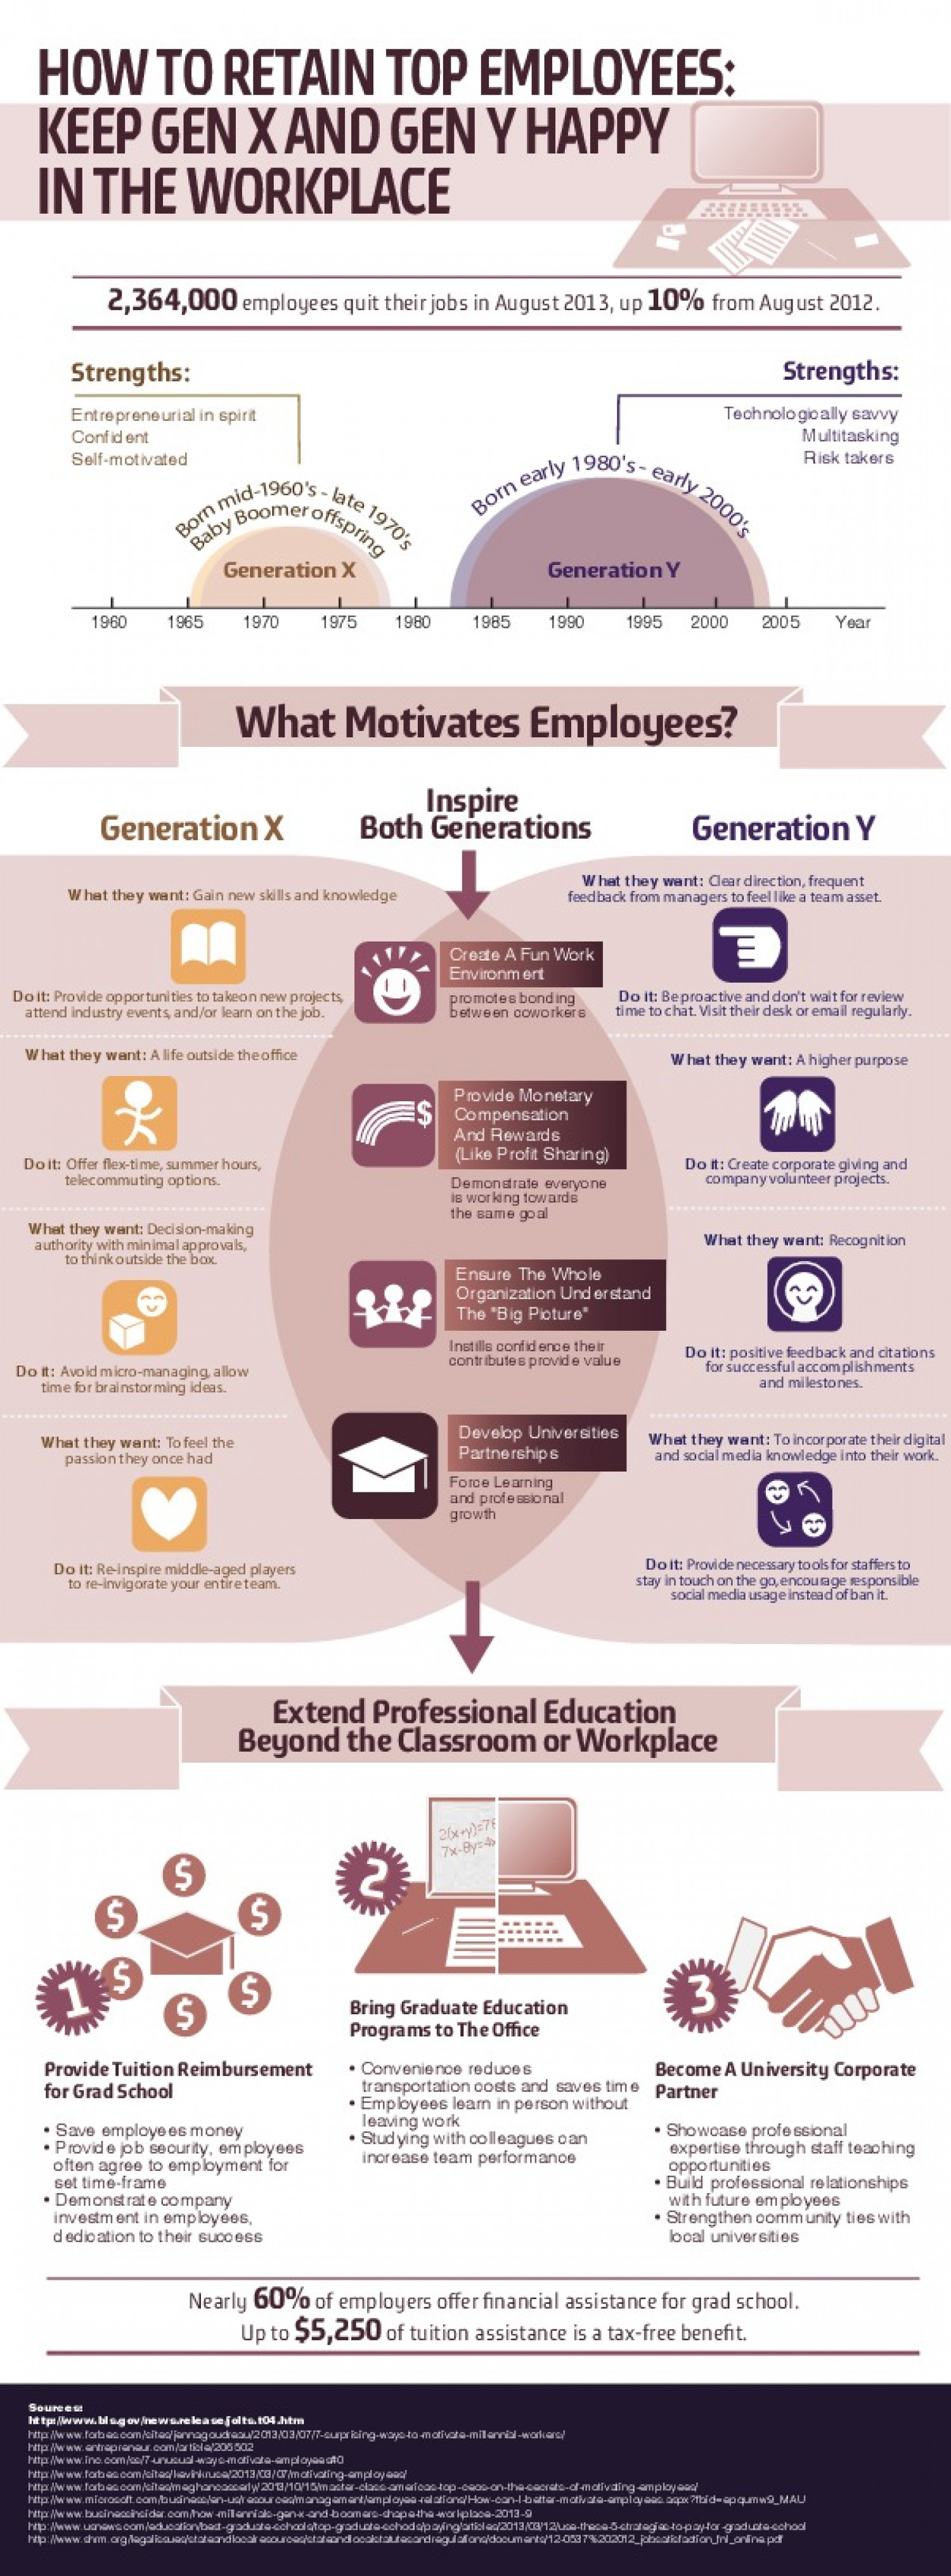 employee retention of generation y Claremont mckenna college managing the millennials: employee retention strategies for generation y submitted to professor jay conger and dean gregory hess.